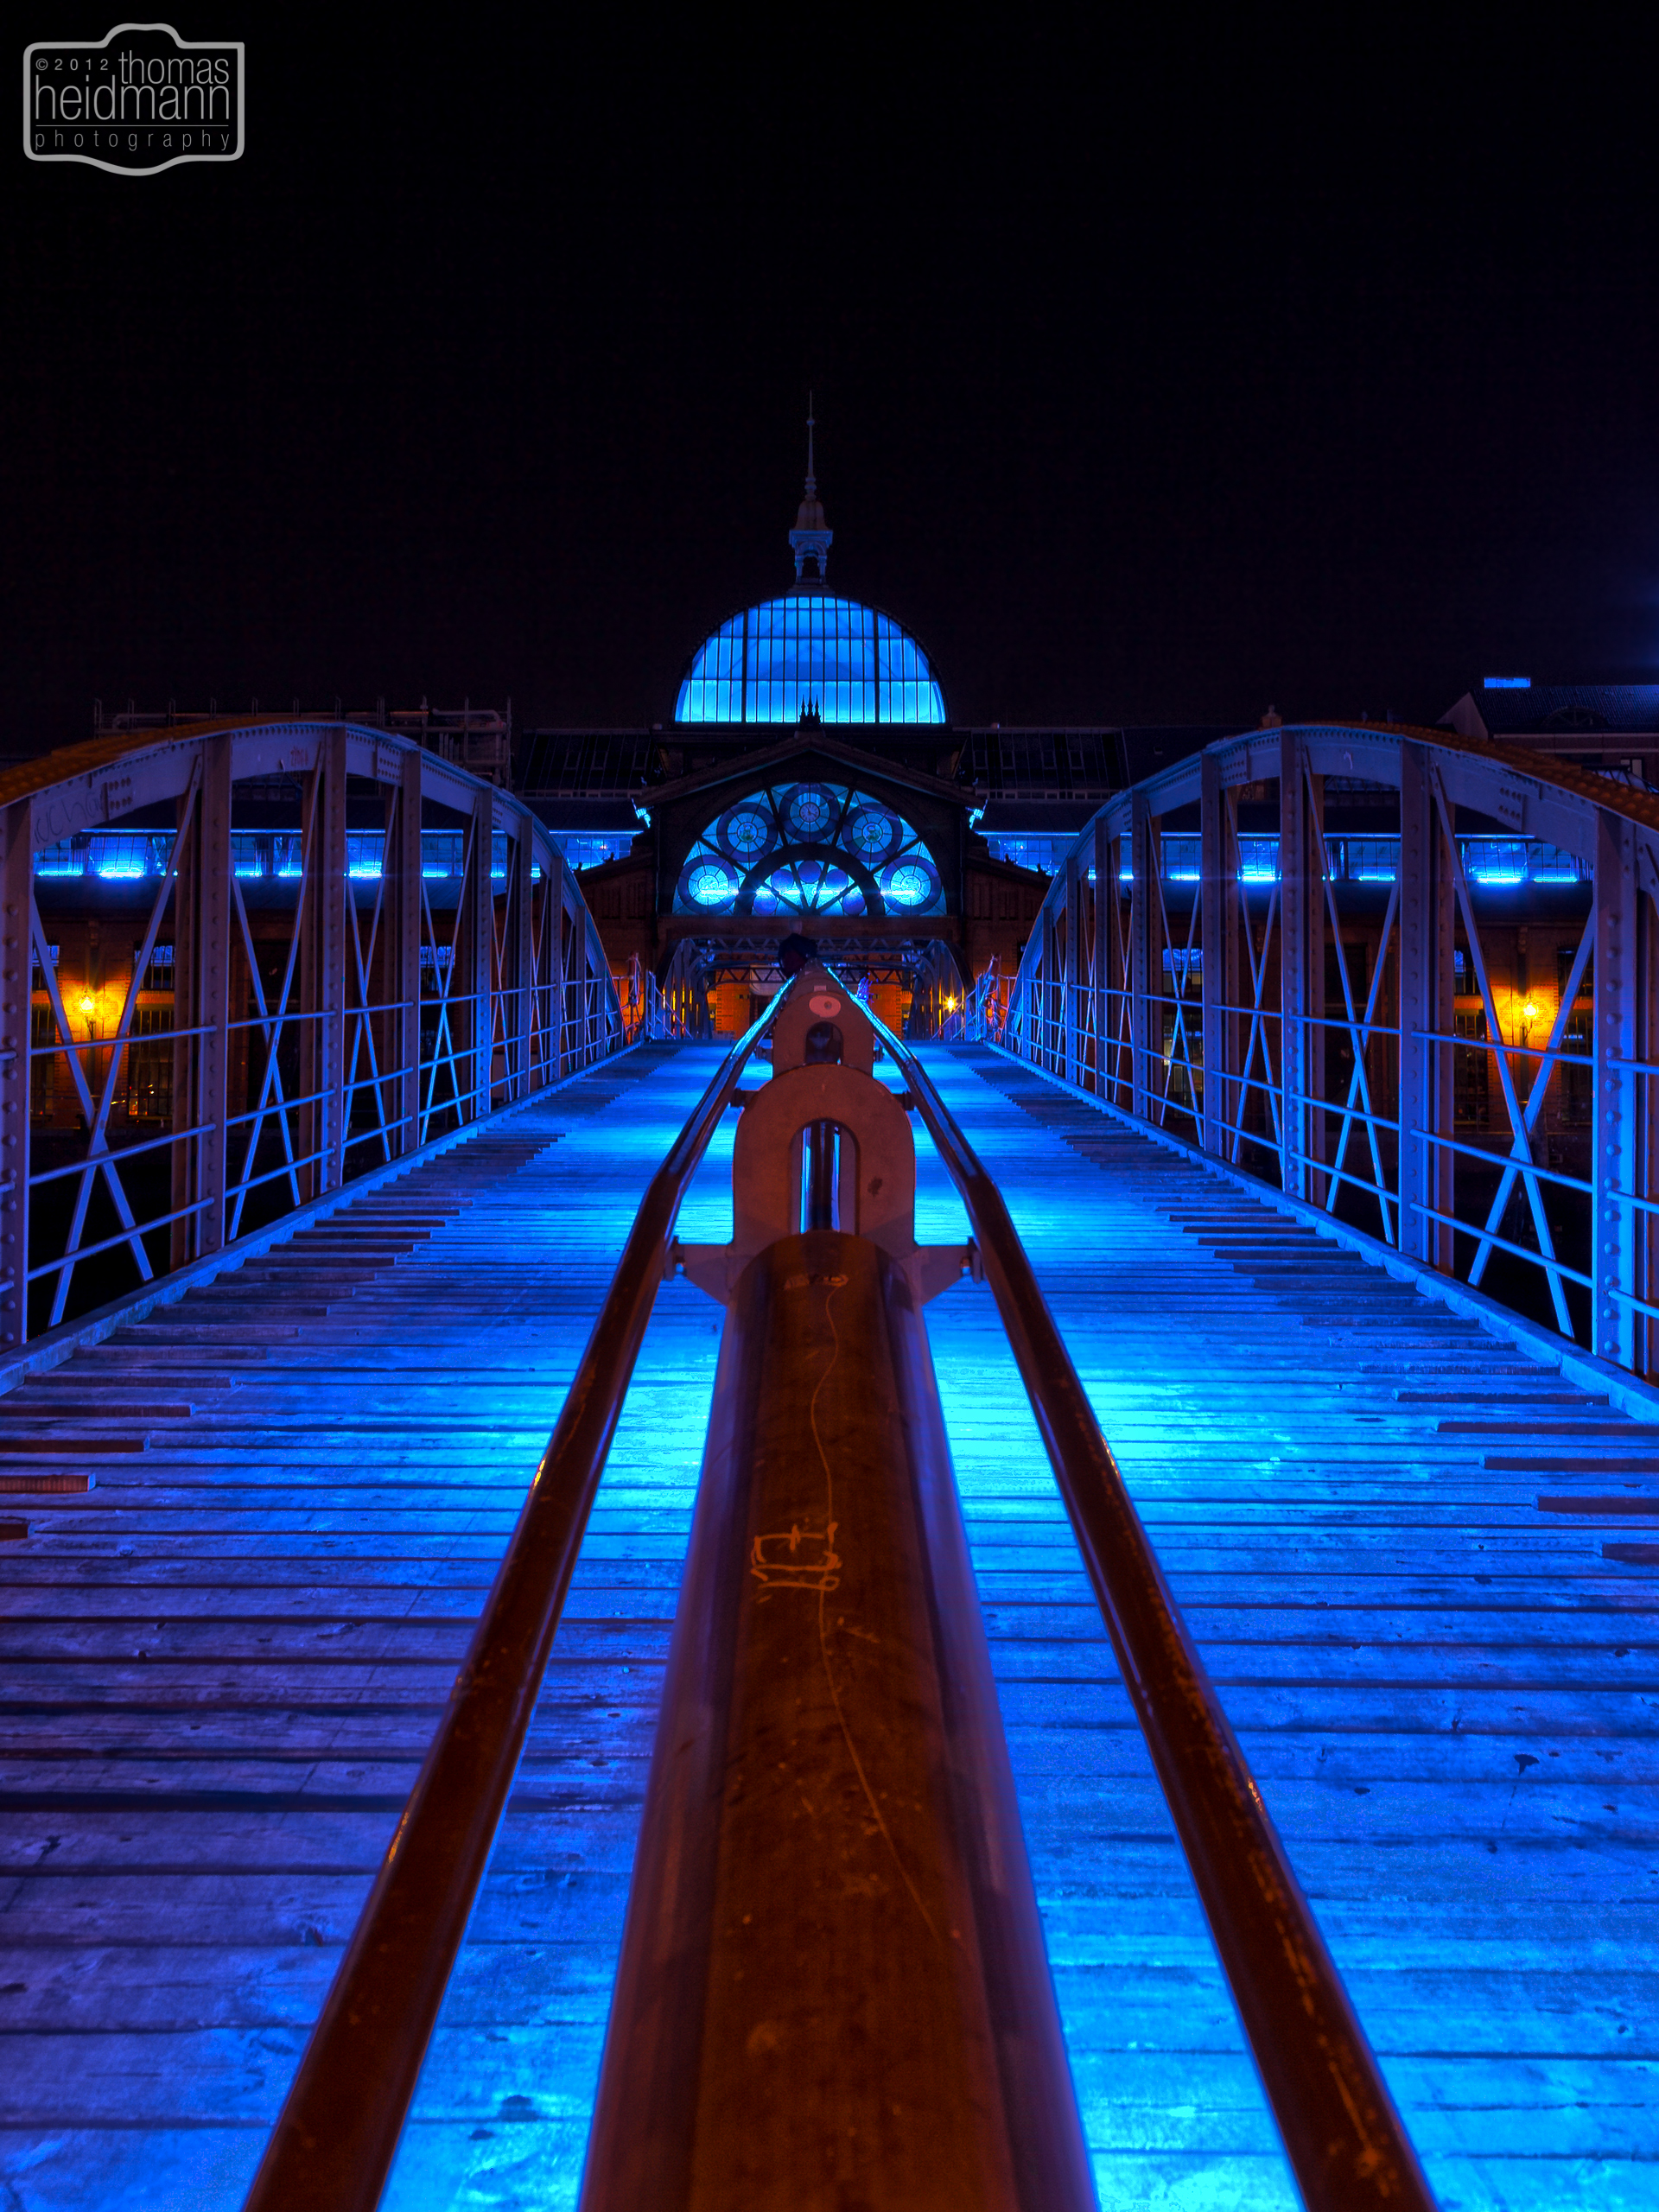 Blue Port meets Fischauktionshalle